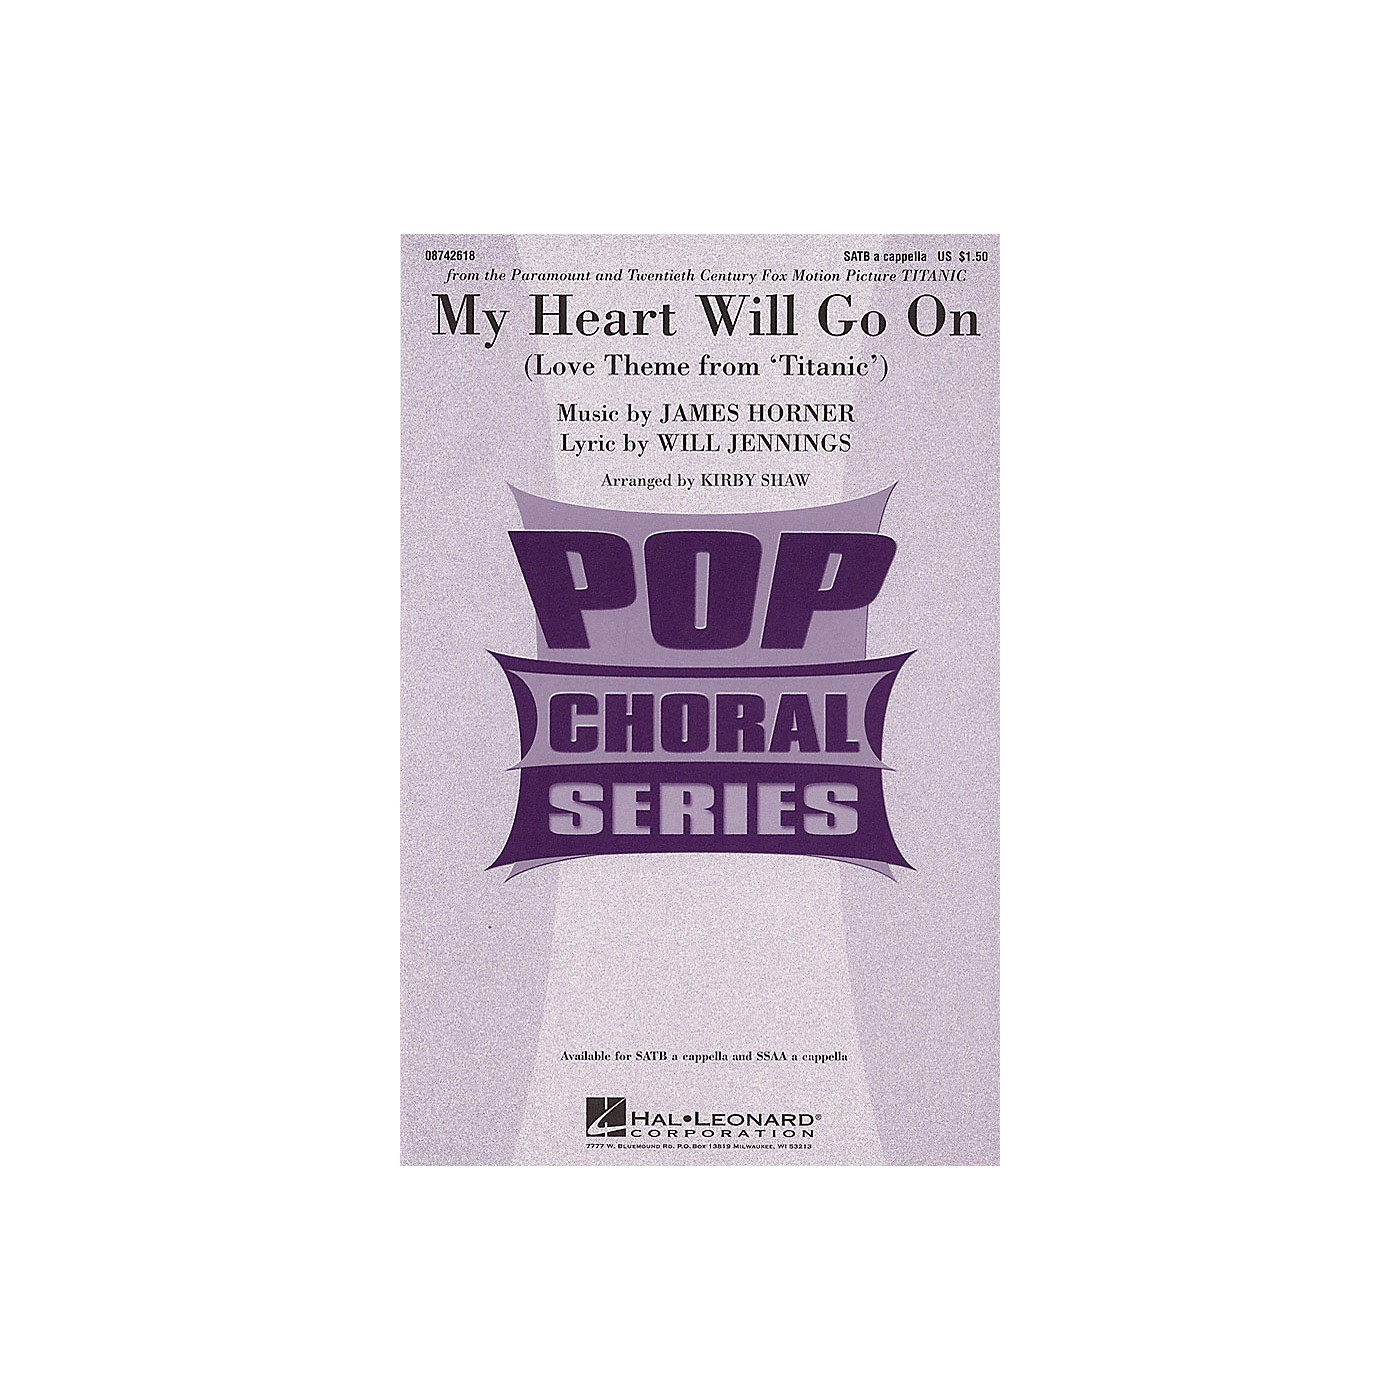 Hal Leonard My Heart Will Go On (Love Theme from Titanic) SATB a cappella by Celine Dion arranged by Kirby Shaw thumbnail